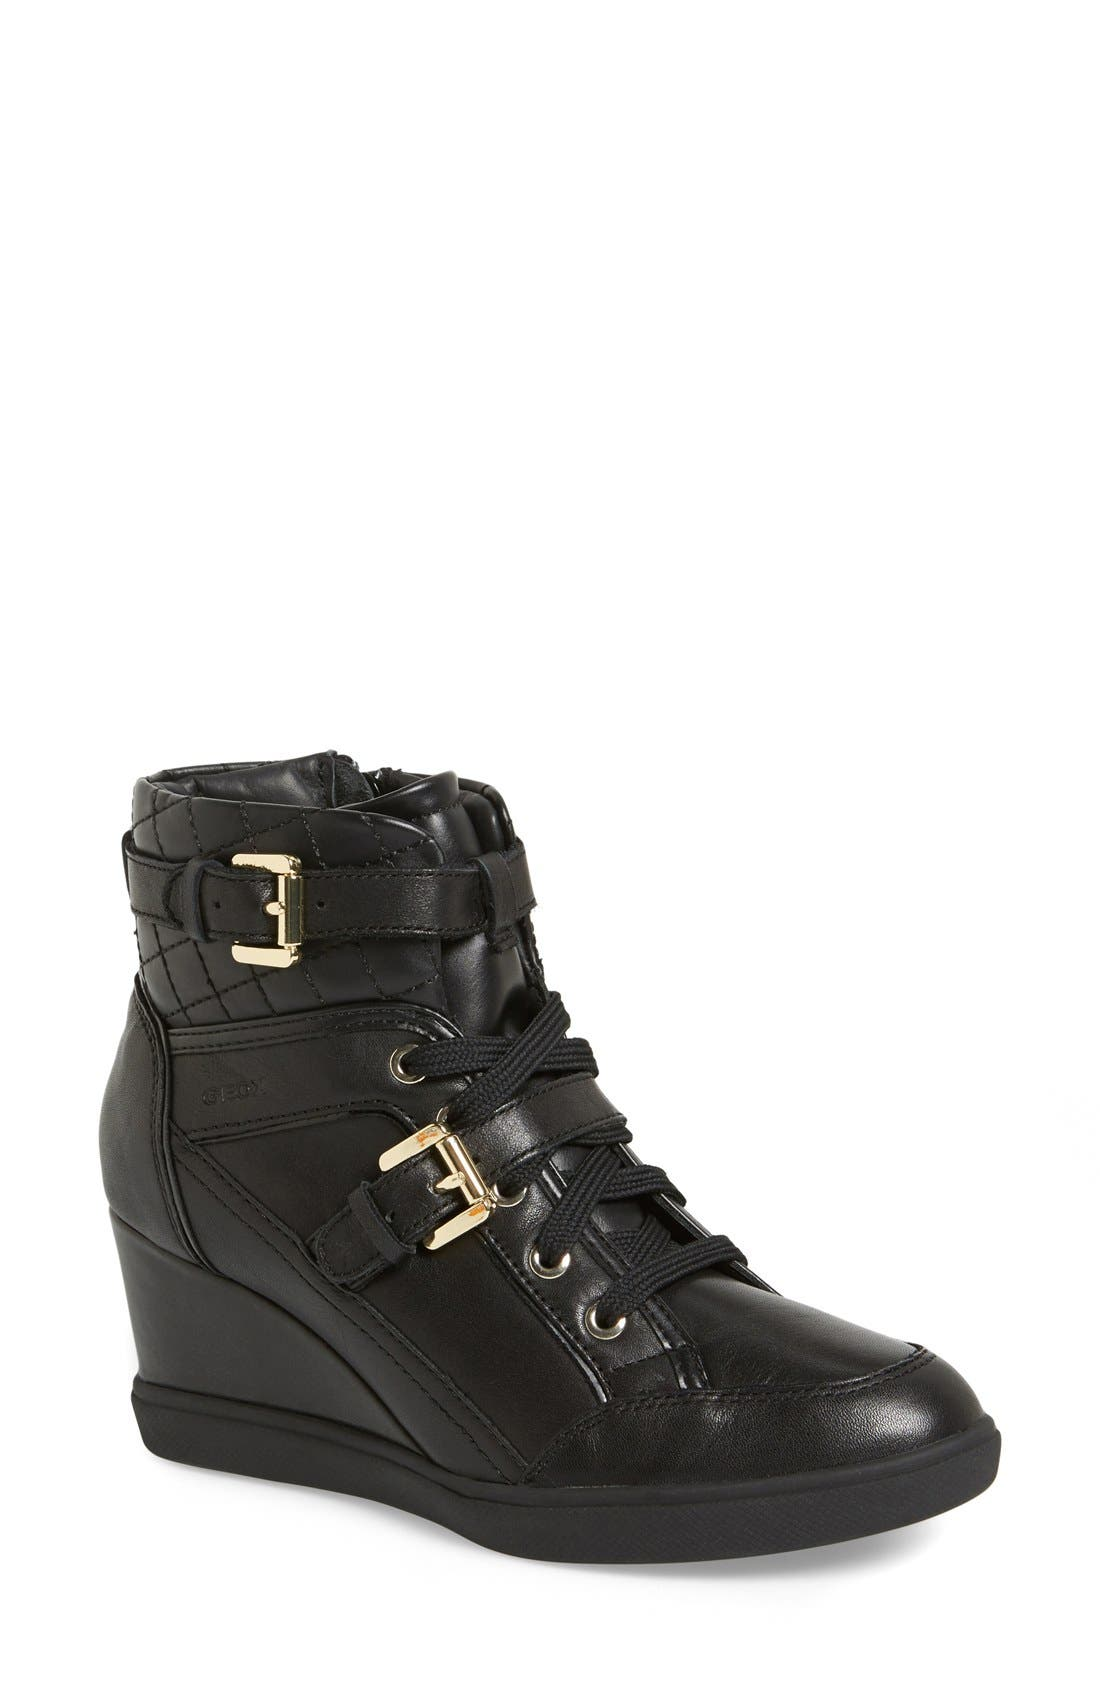 Main Image - Geox 'Eleni' Wedge Sneaker (Women)